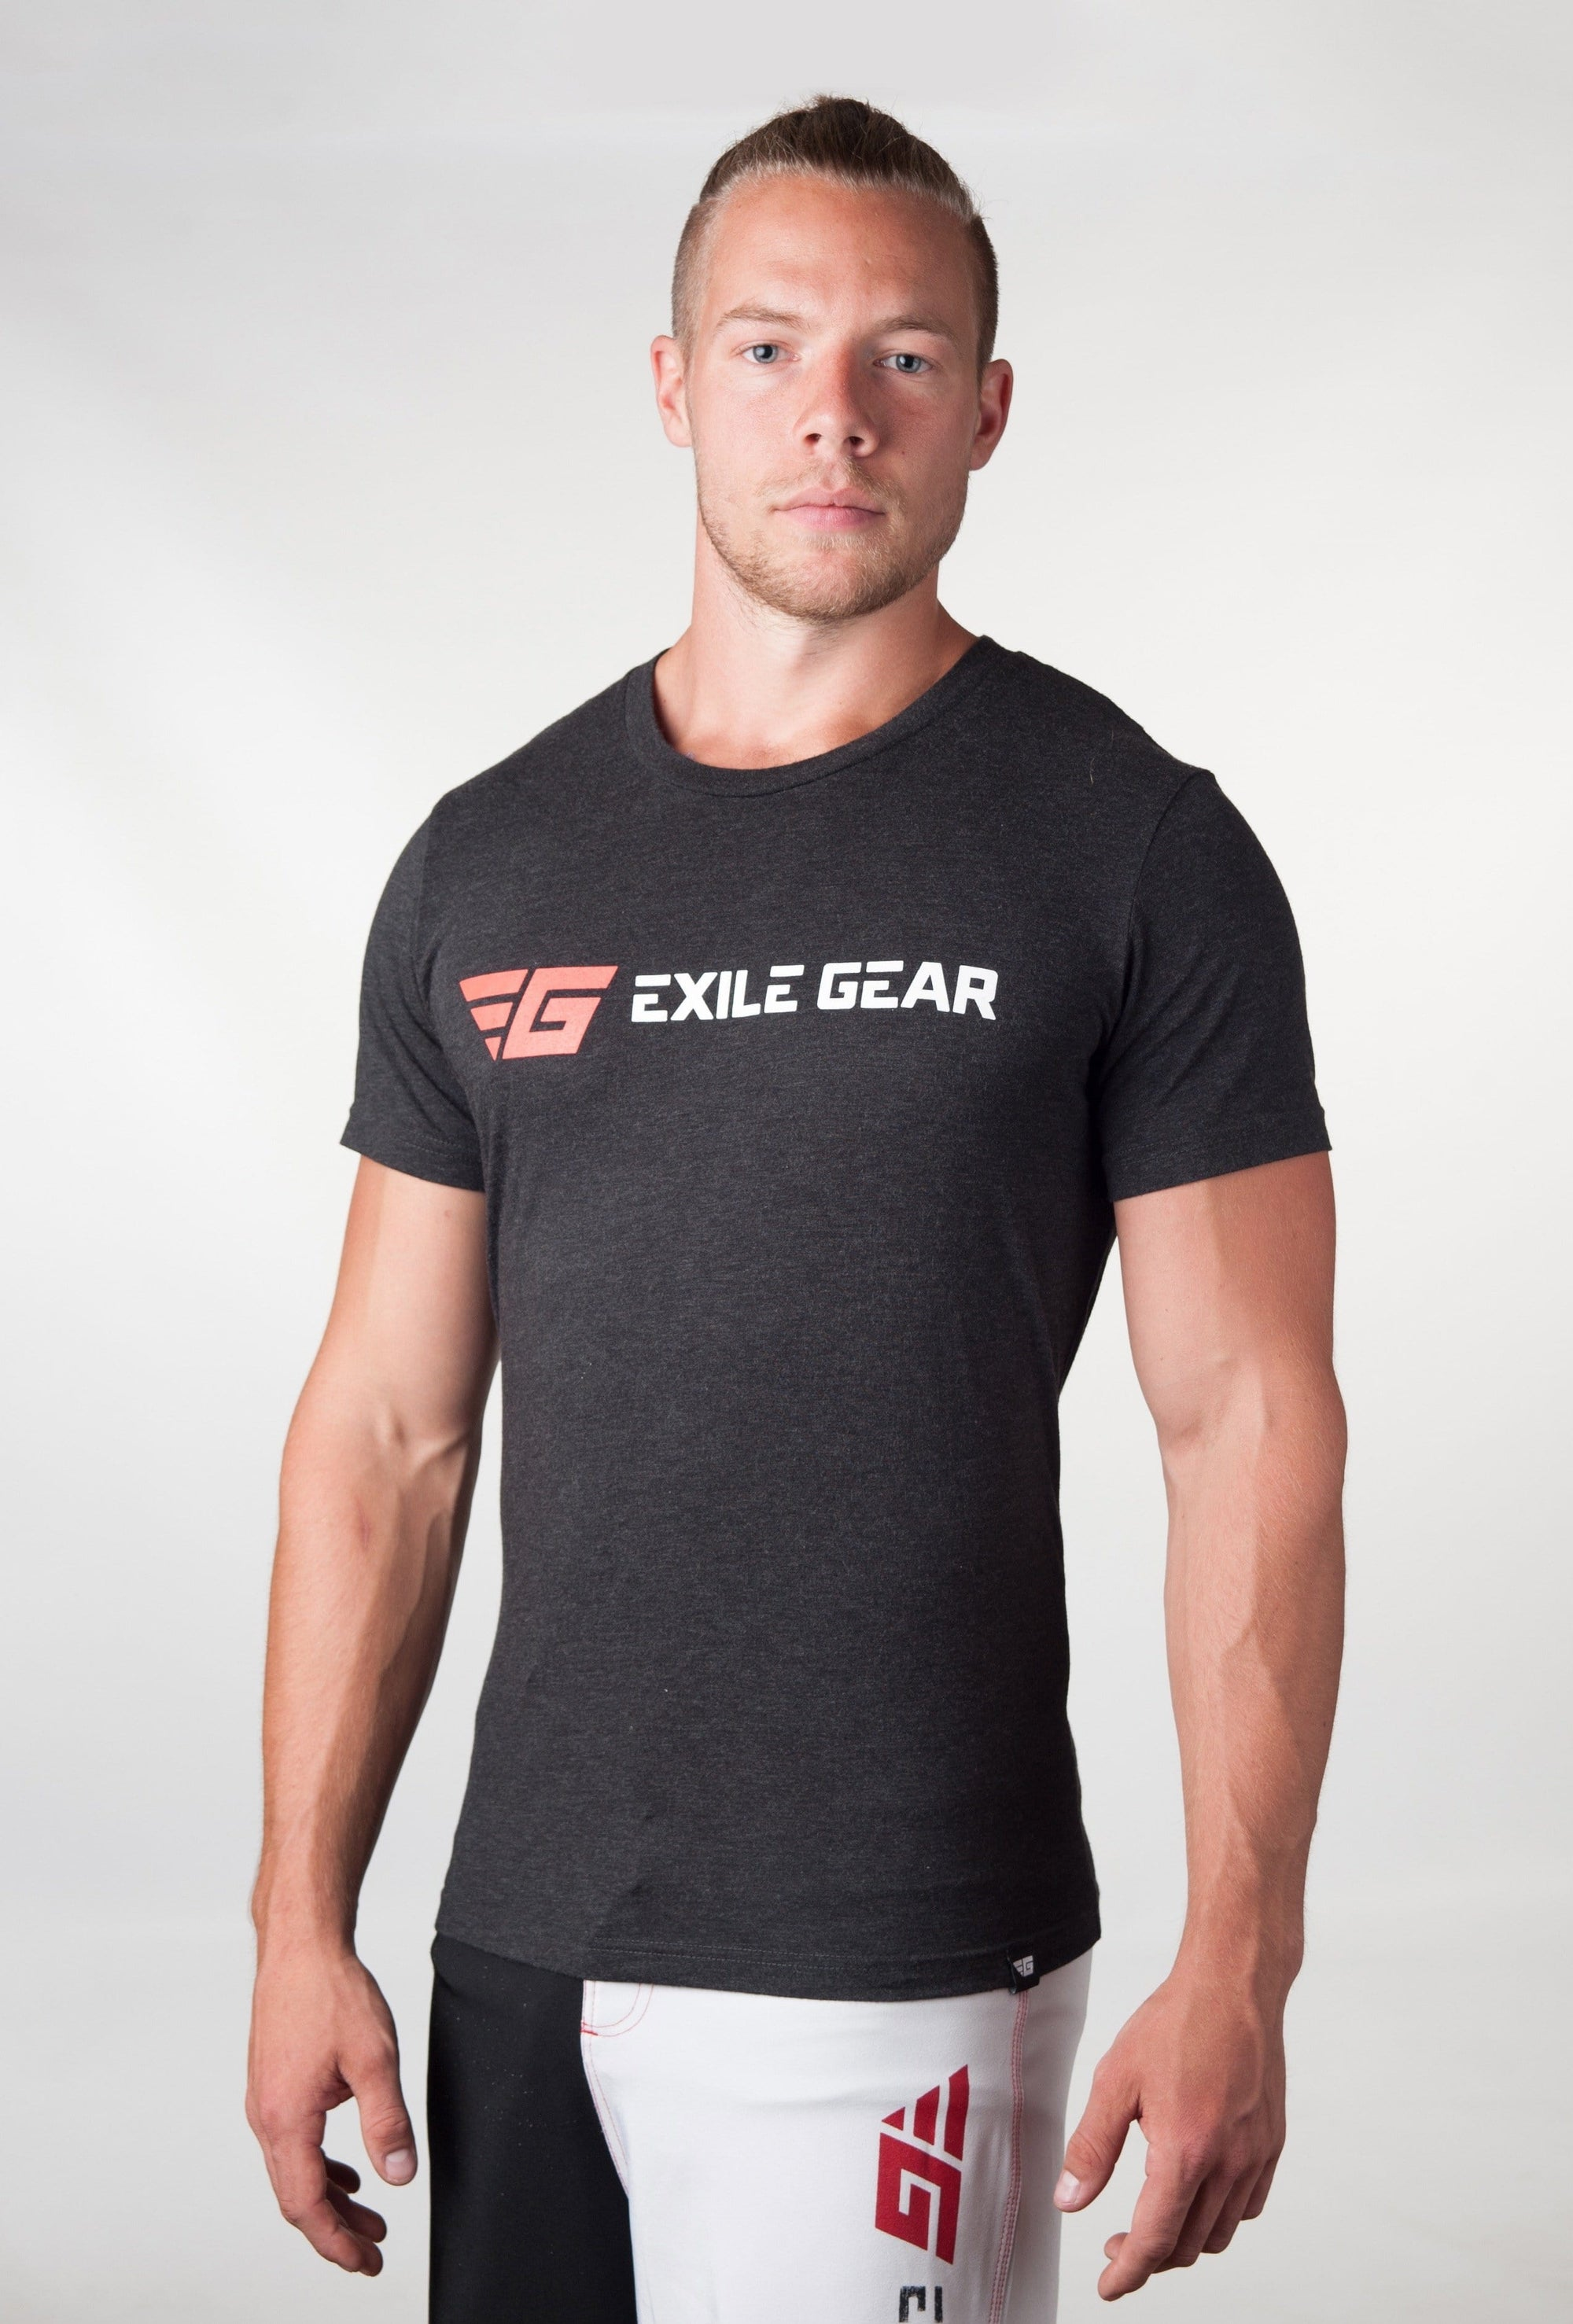 Men's Exile Gear T-Shirt